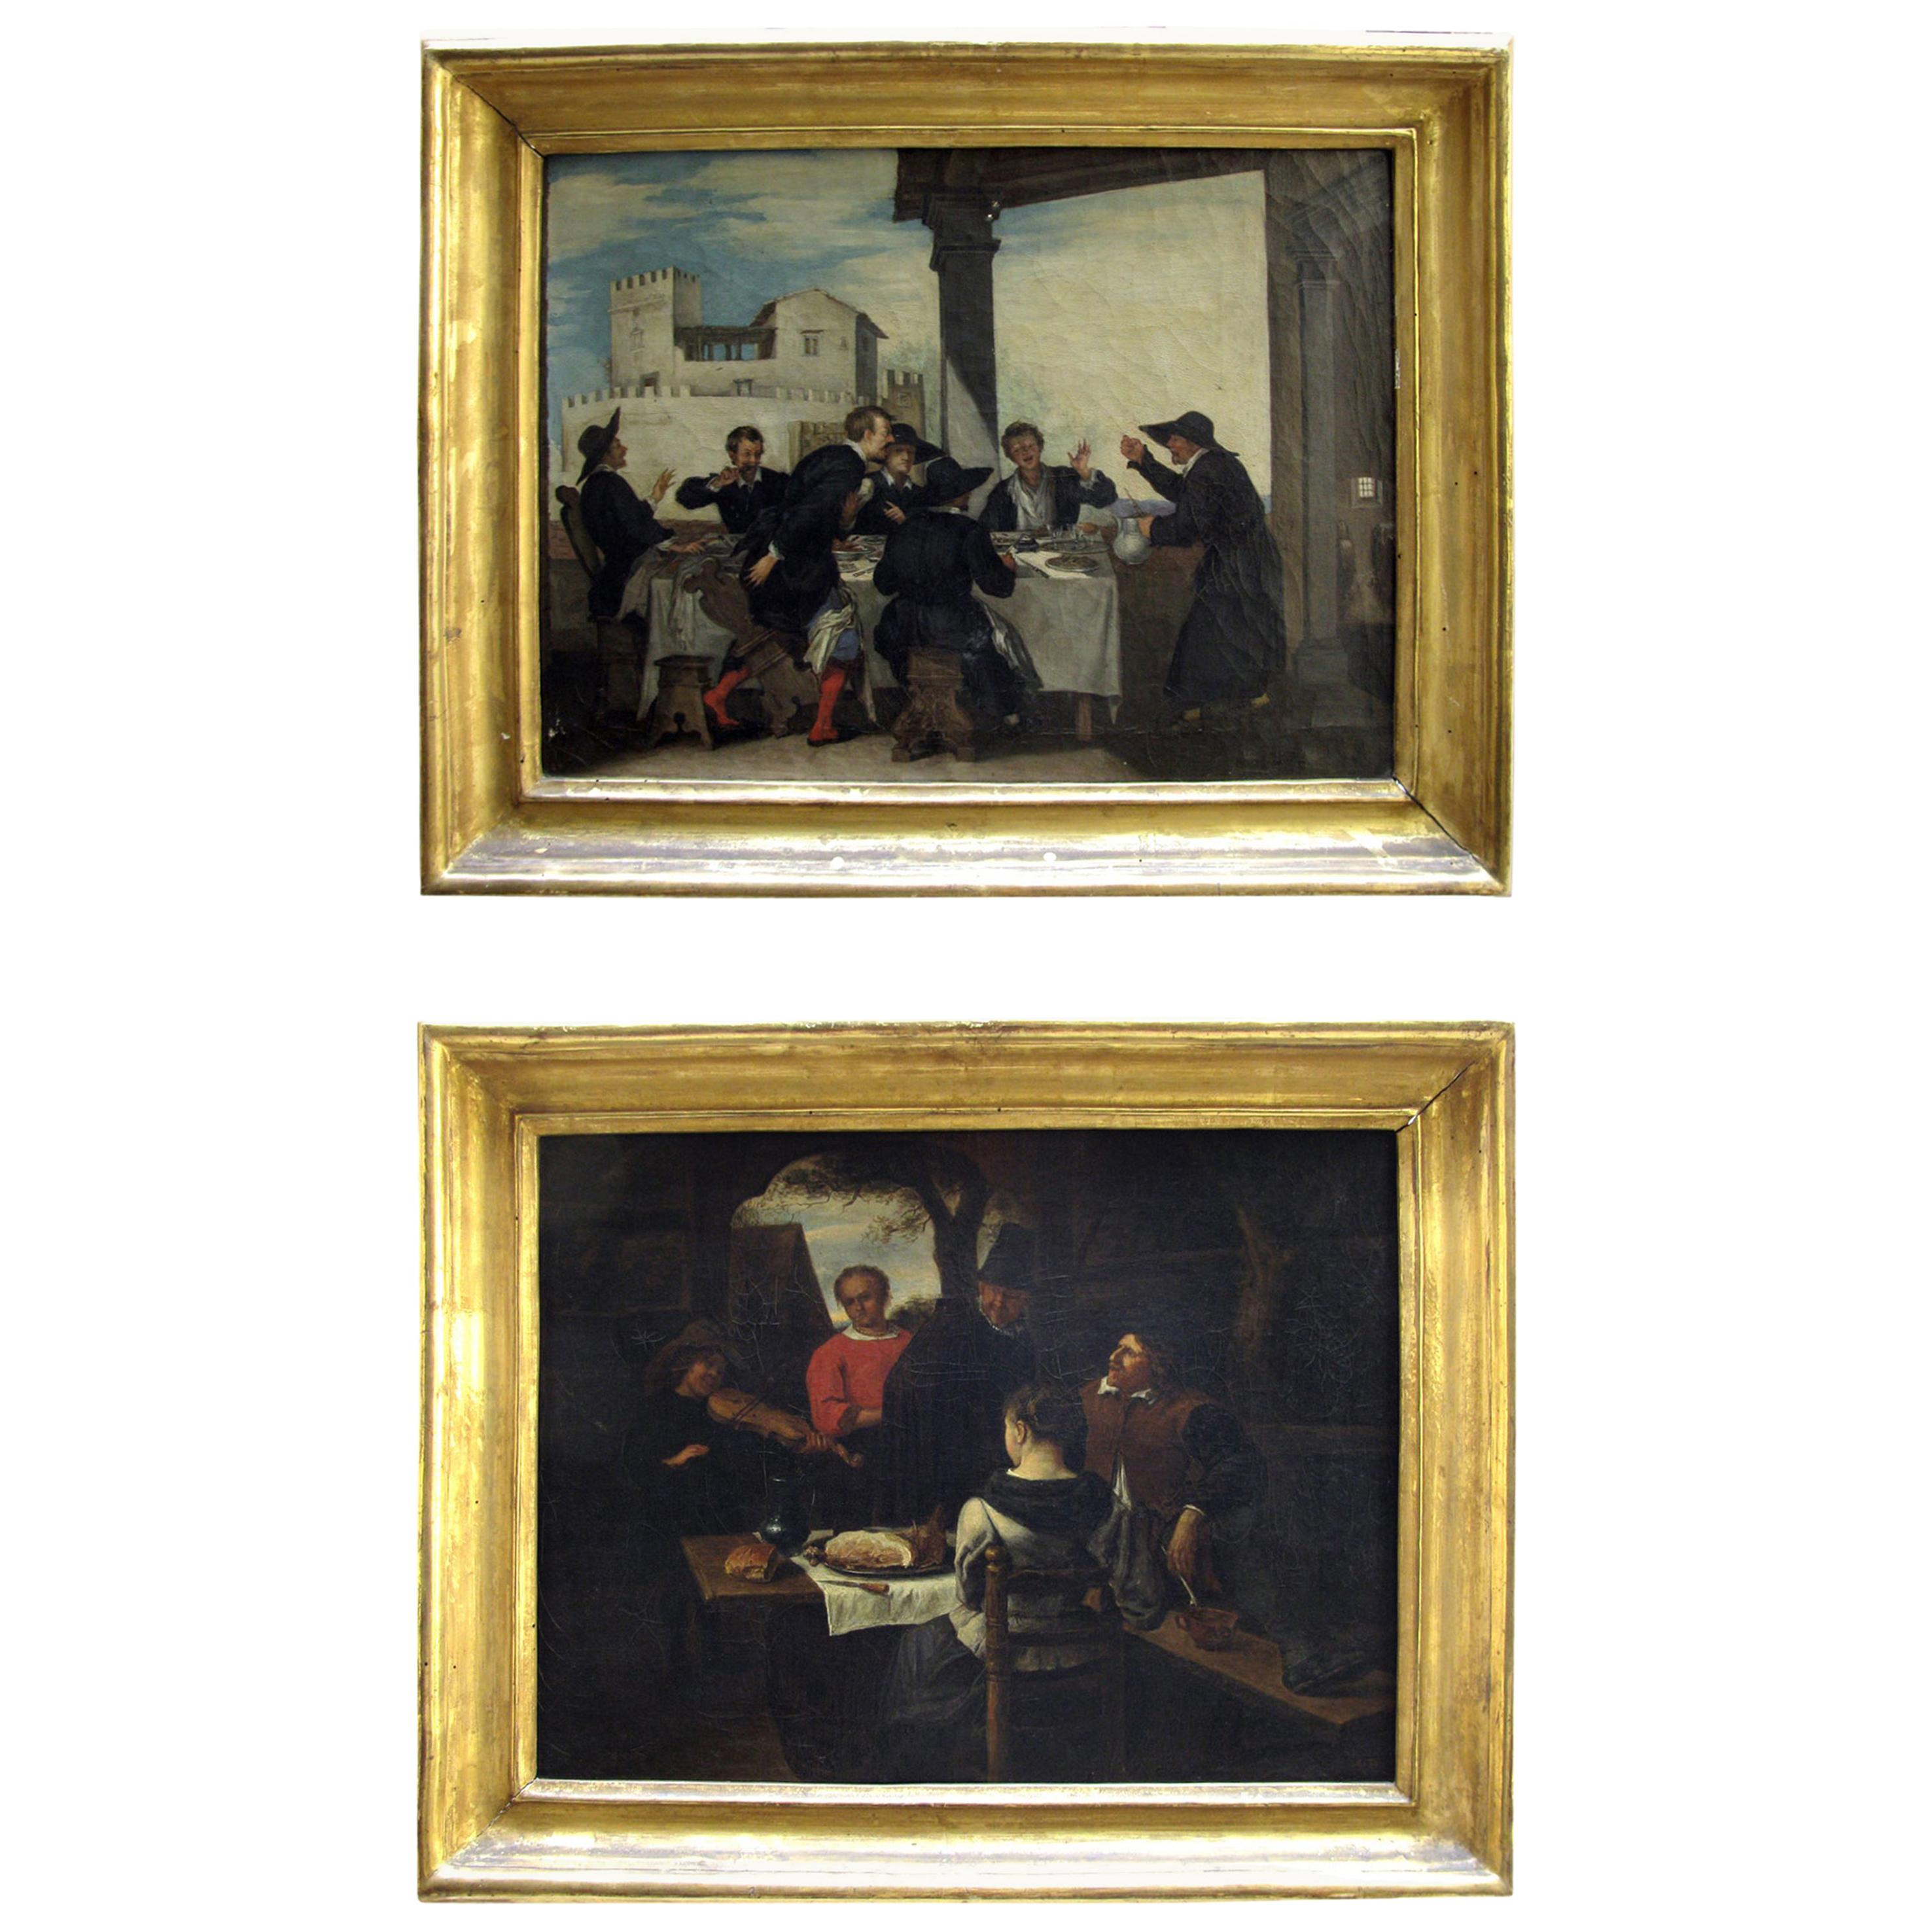 Pair of Italian Banquets Genre Paintings with Figures, Mid-19th Century